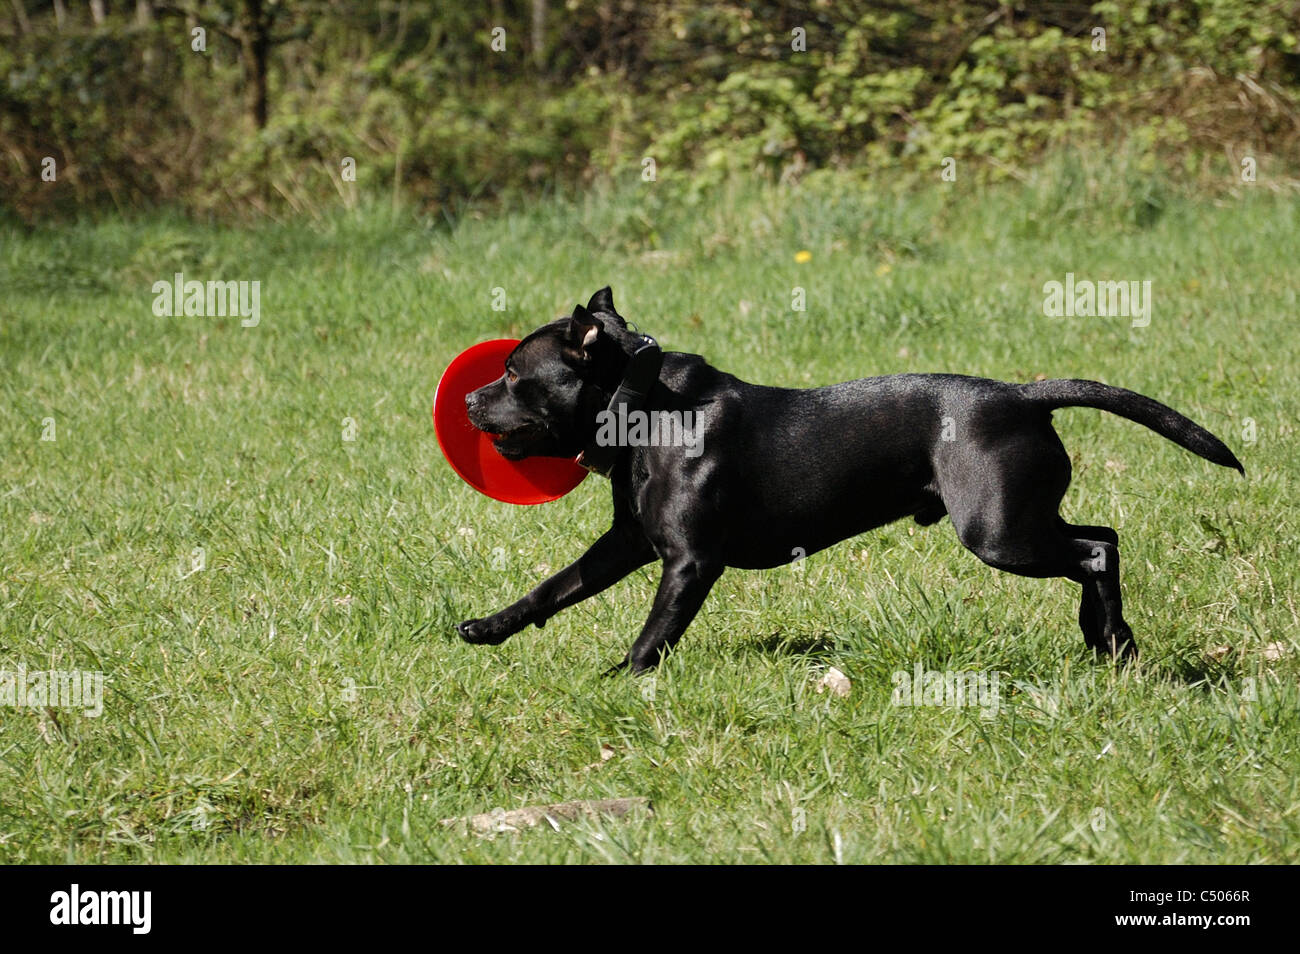 Black Staffordshire Bull Terrier with red frisbee - Stock Image